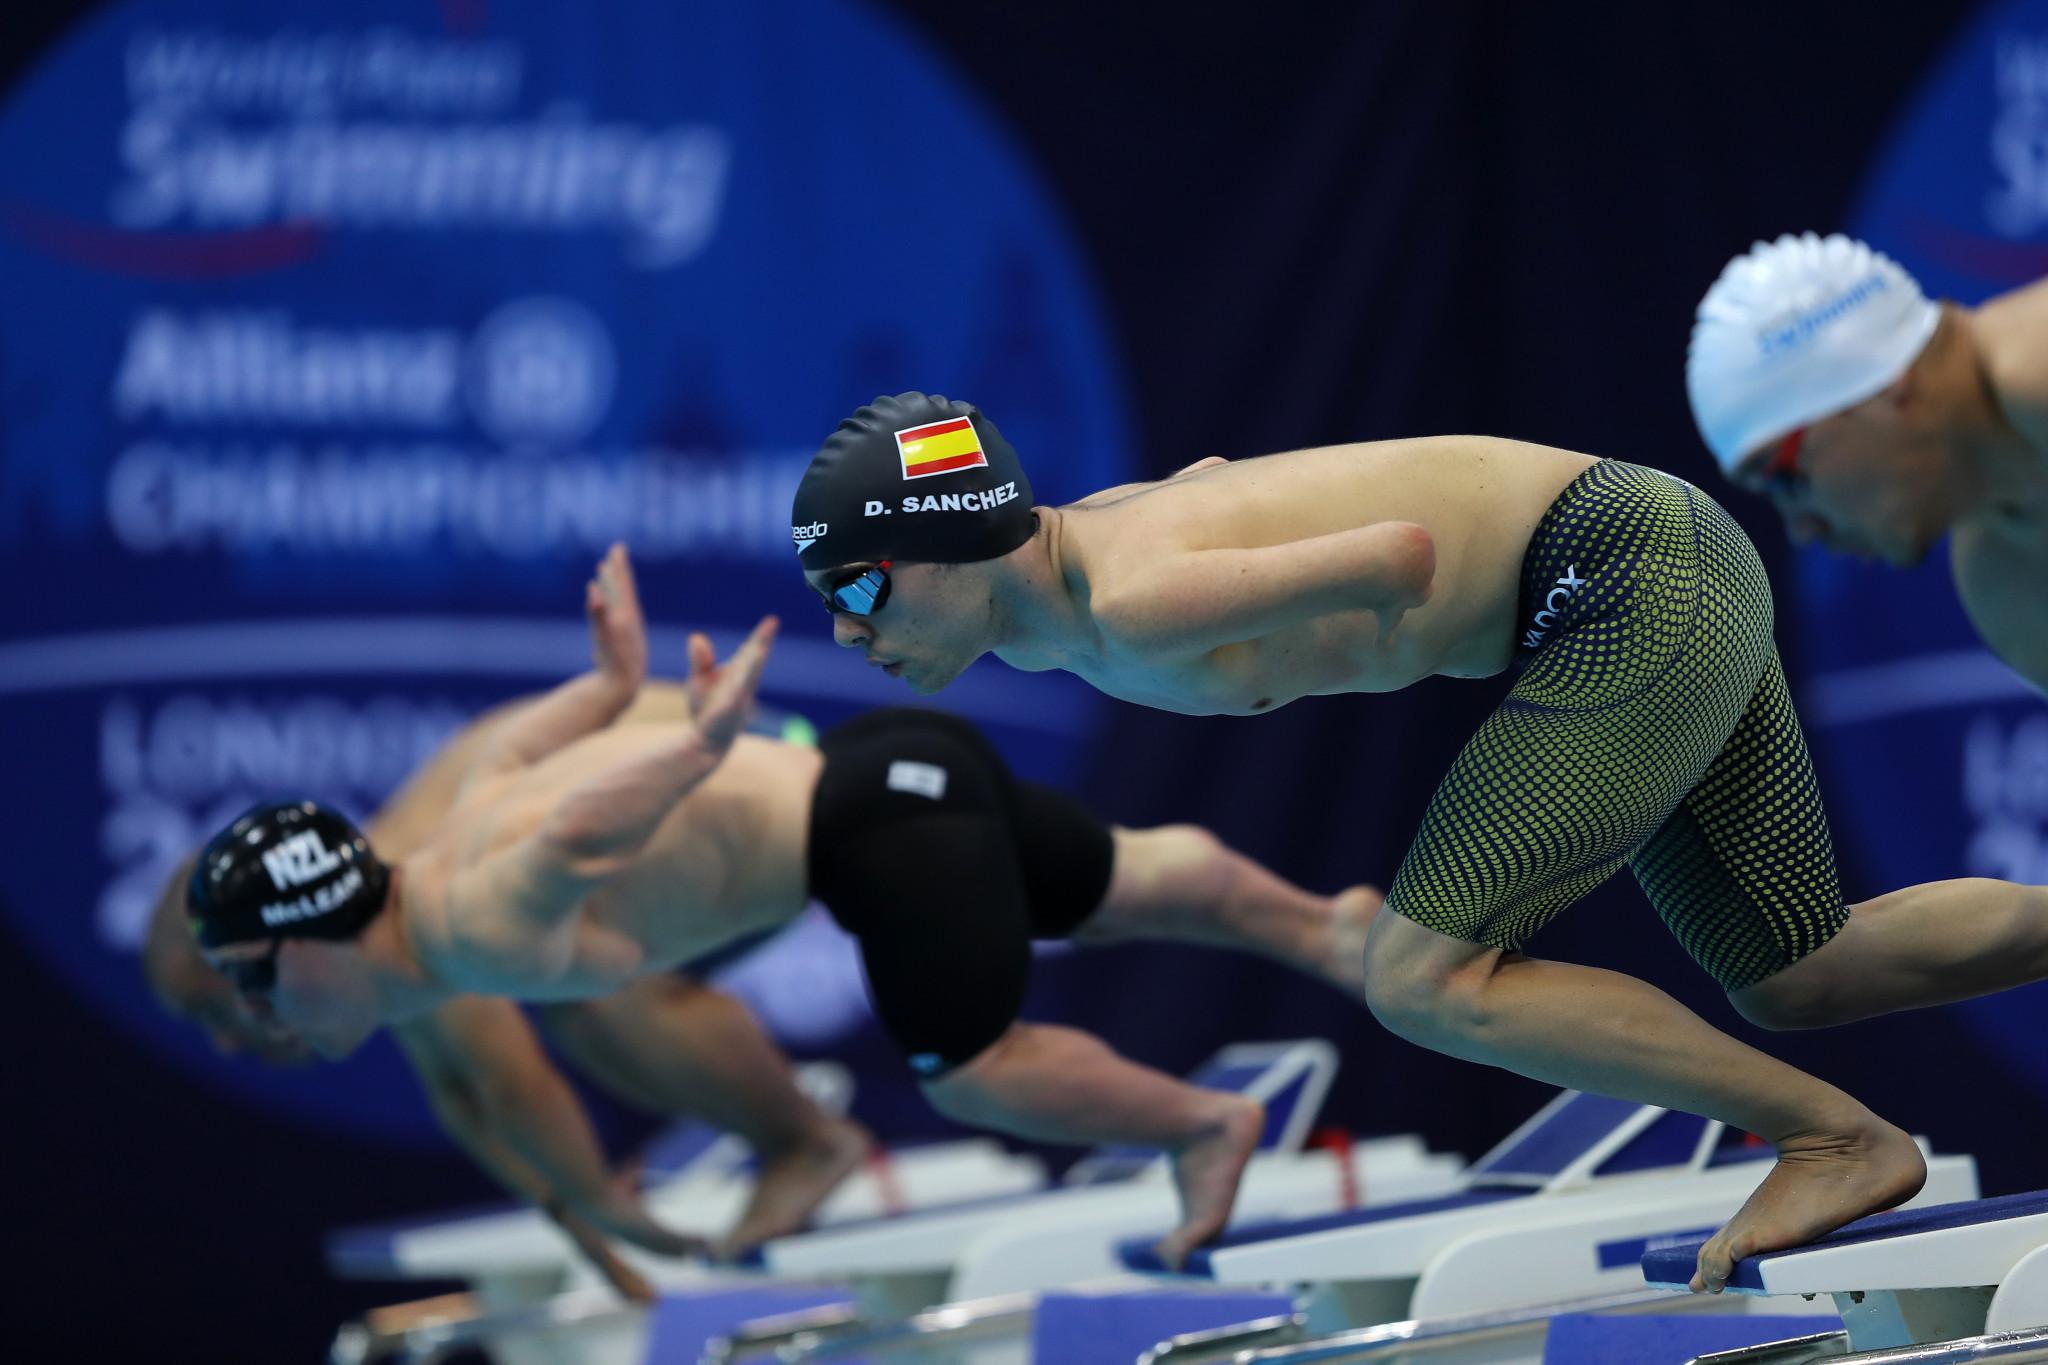 World Para Swimming athletes group meets governing body as part of preparing classification document